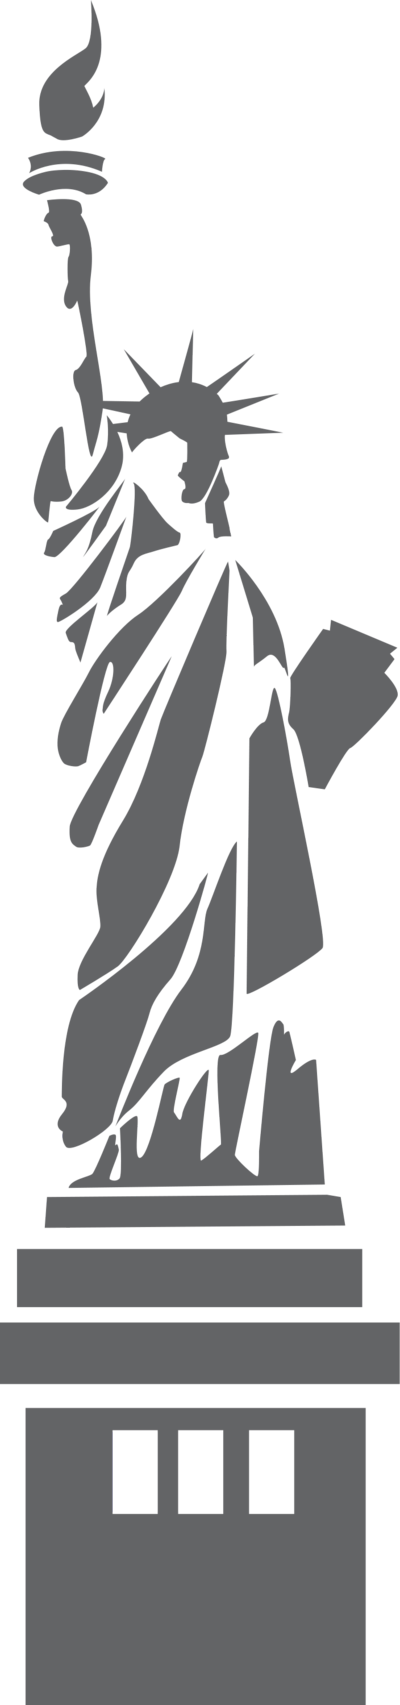 Illustration of the statue. Factory clipart transparent background